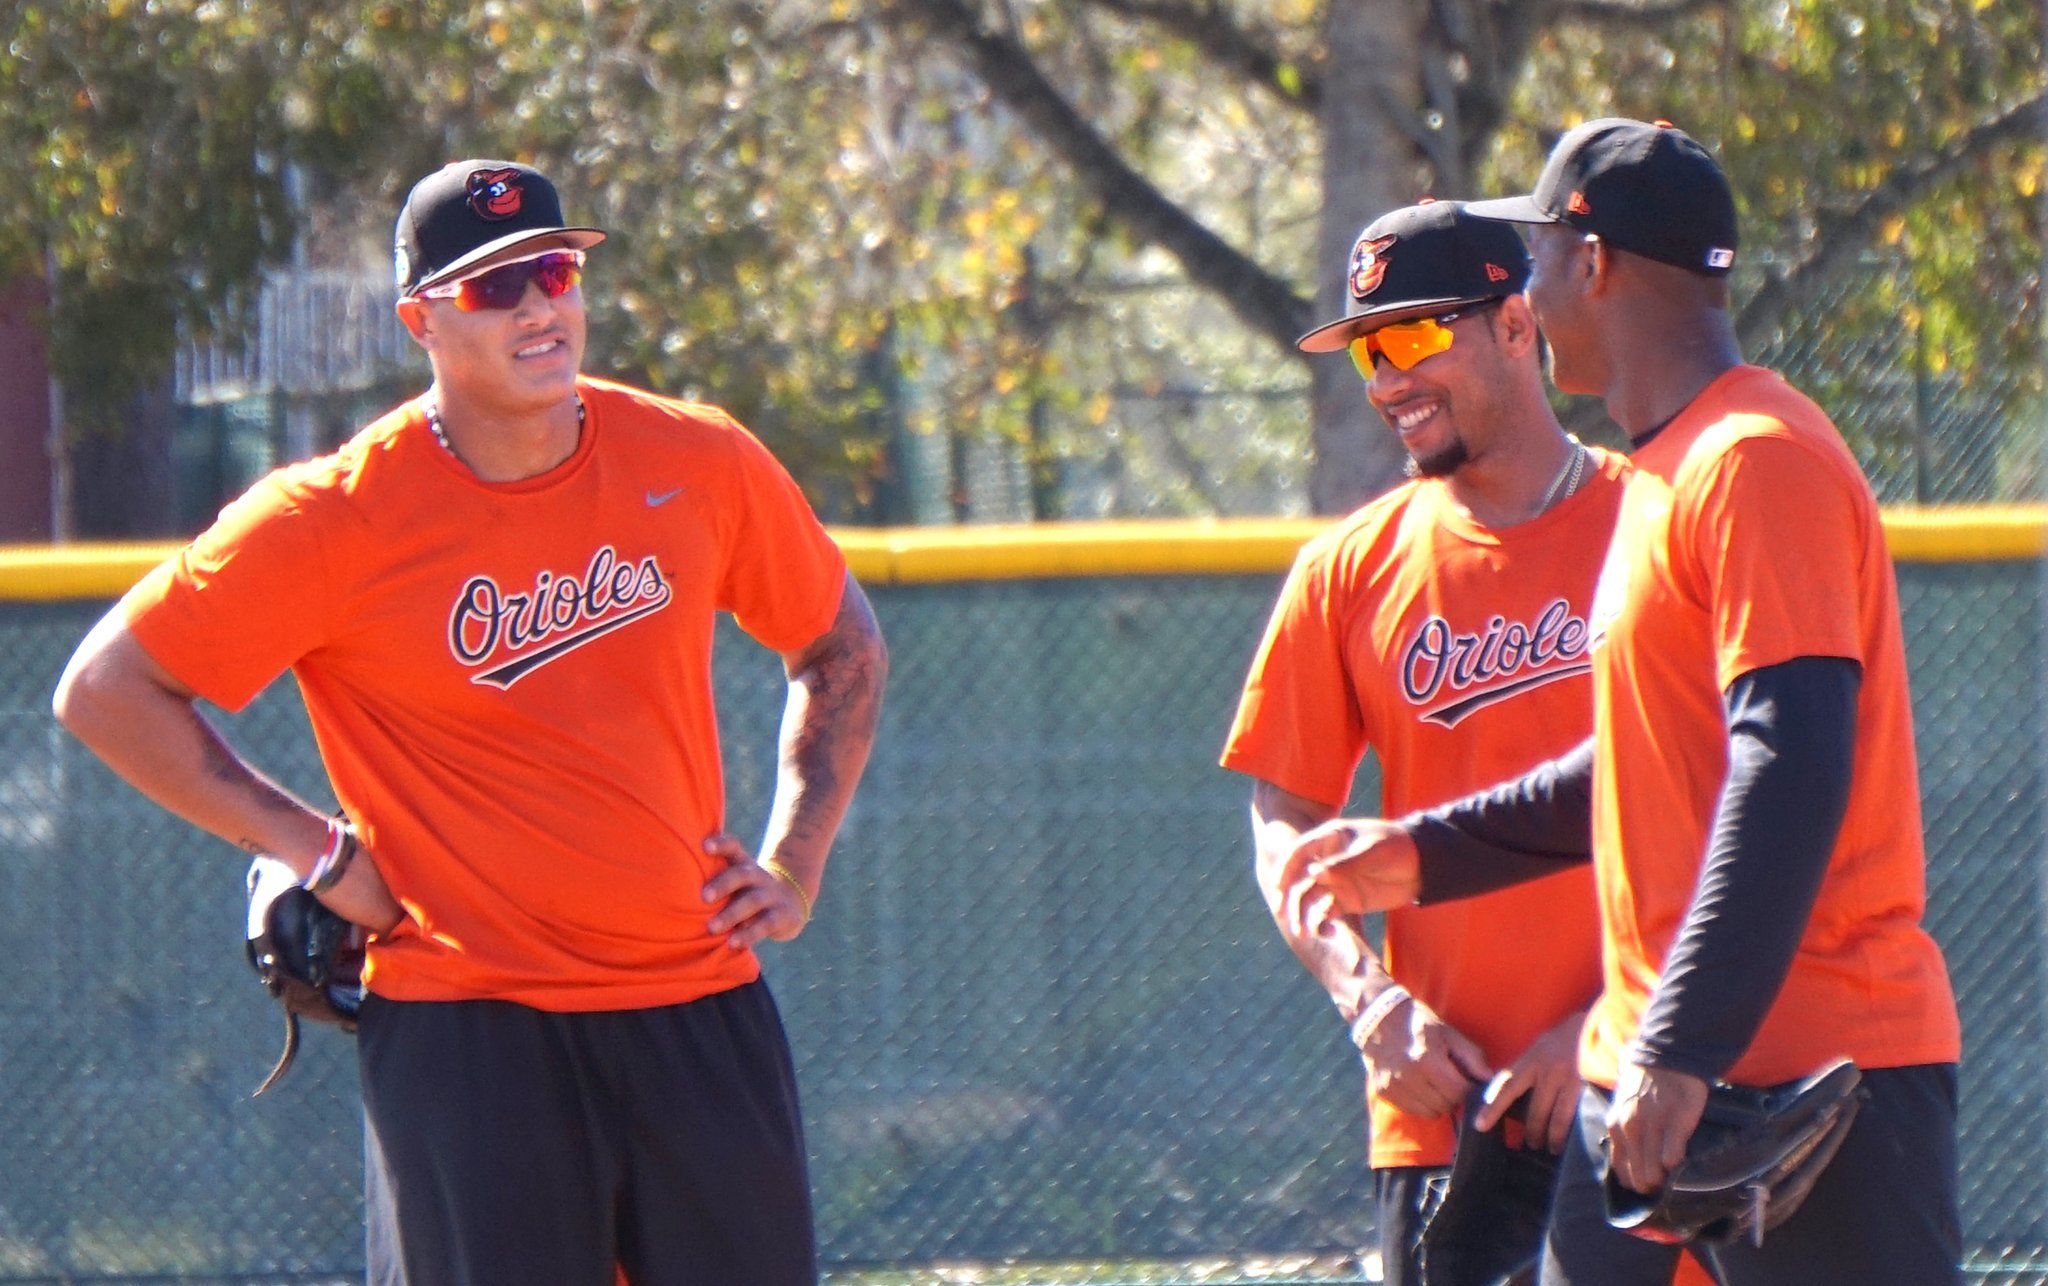 Bs-sp-orioles-spring-training-0222-20170221